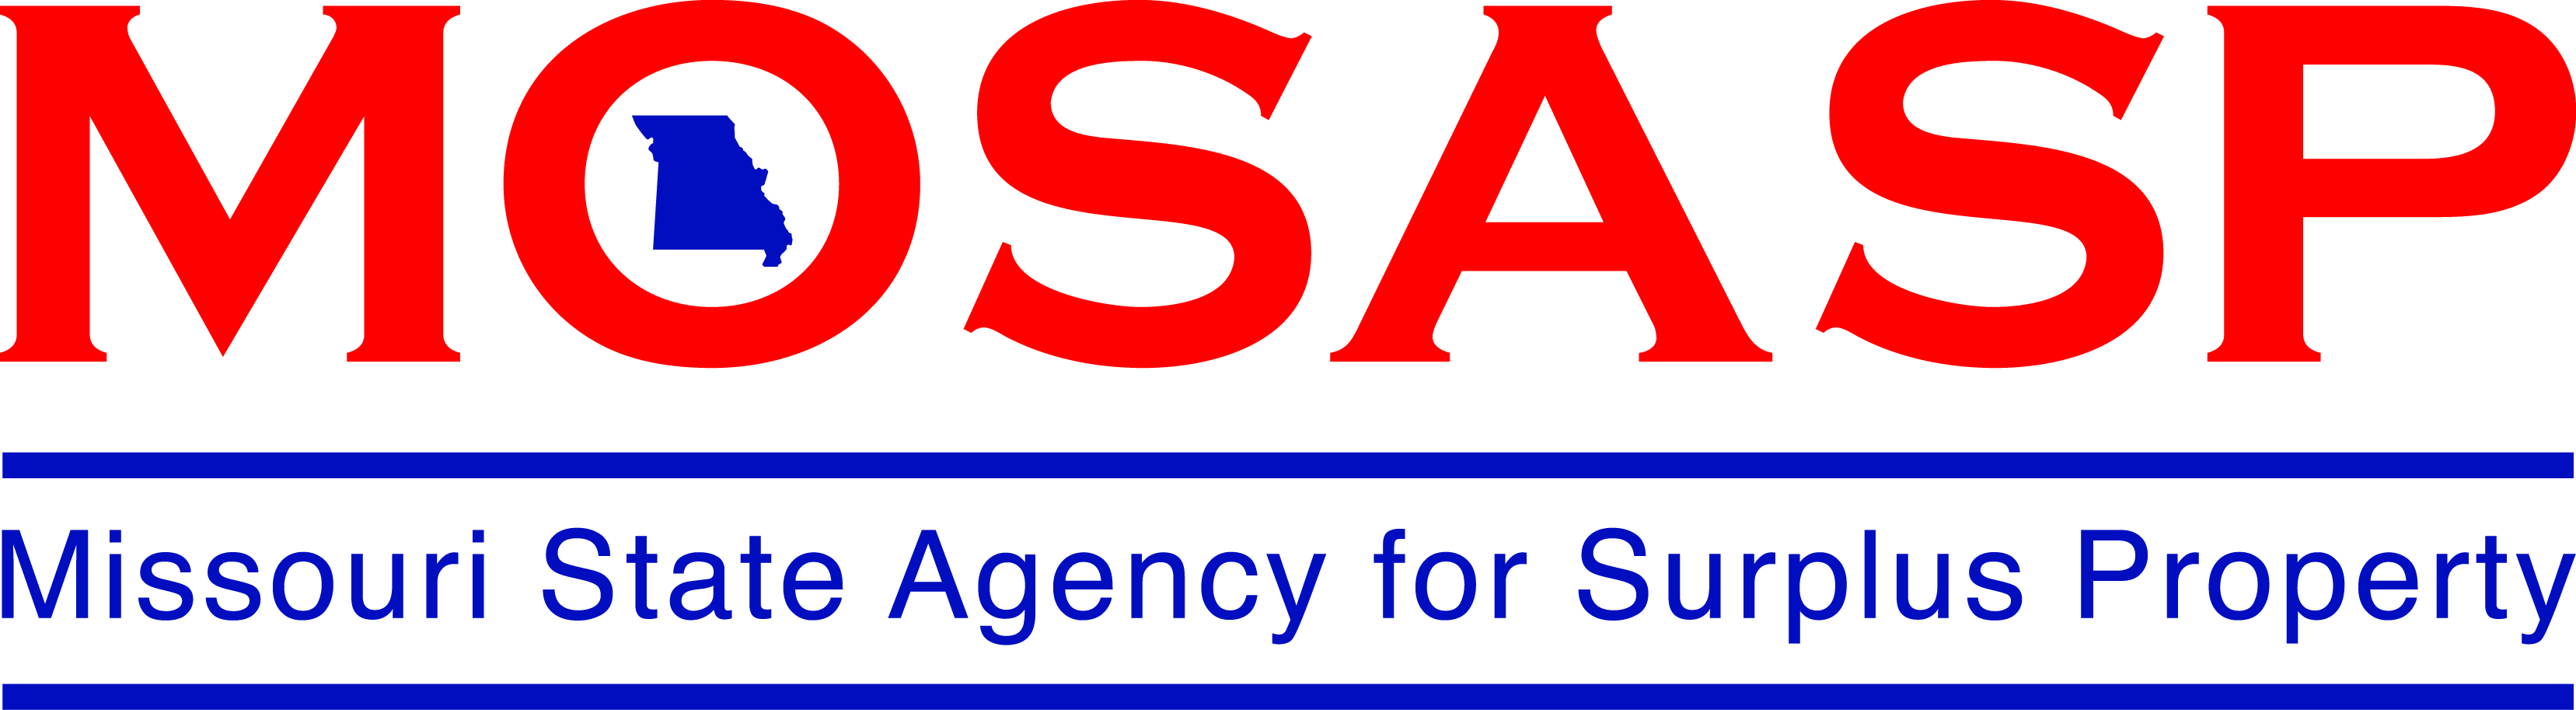 MOSASP - Missouri State Agency for Surplus Property